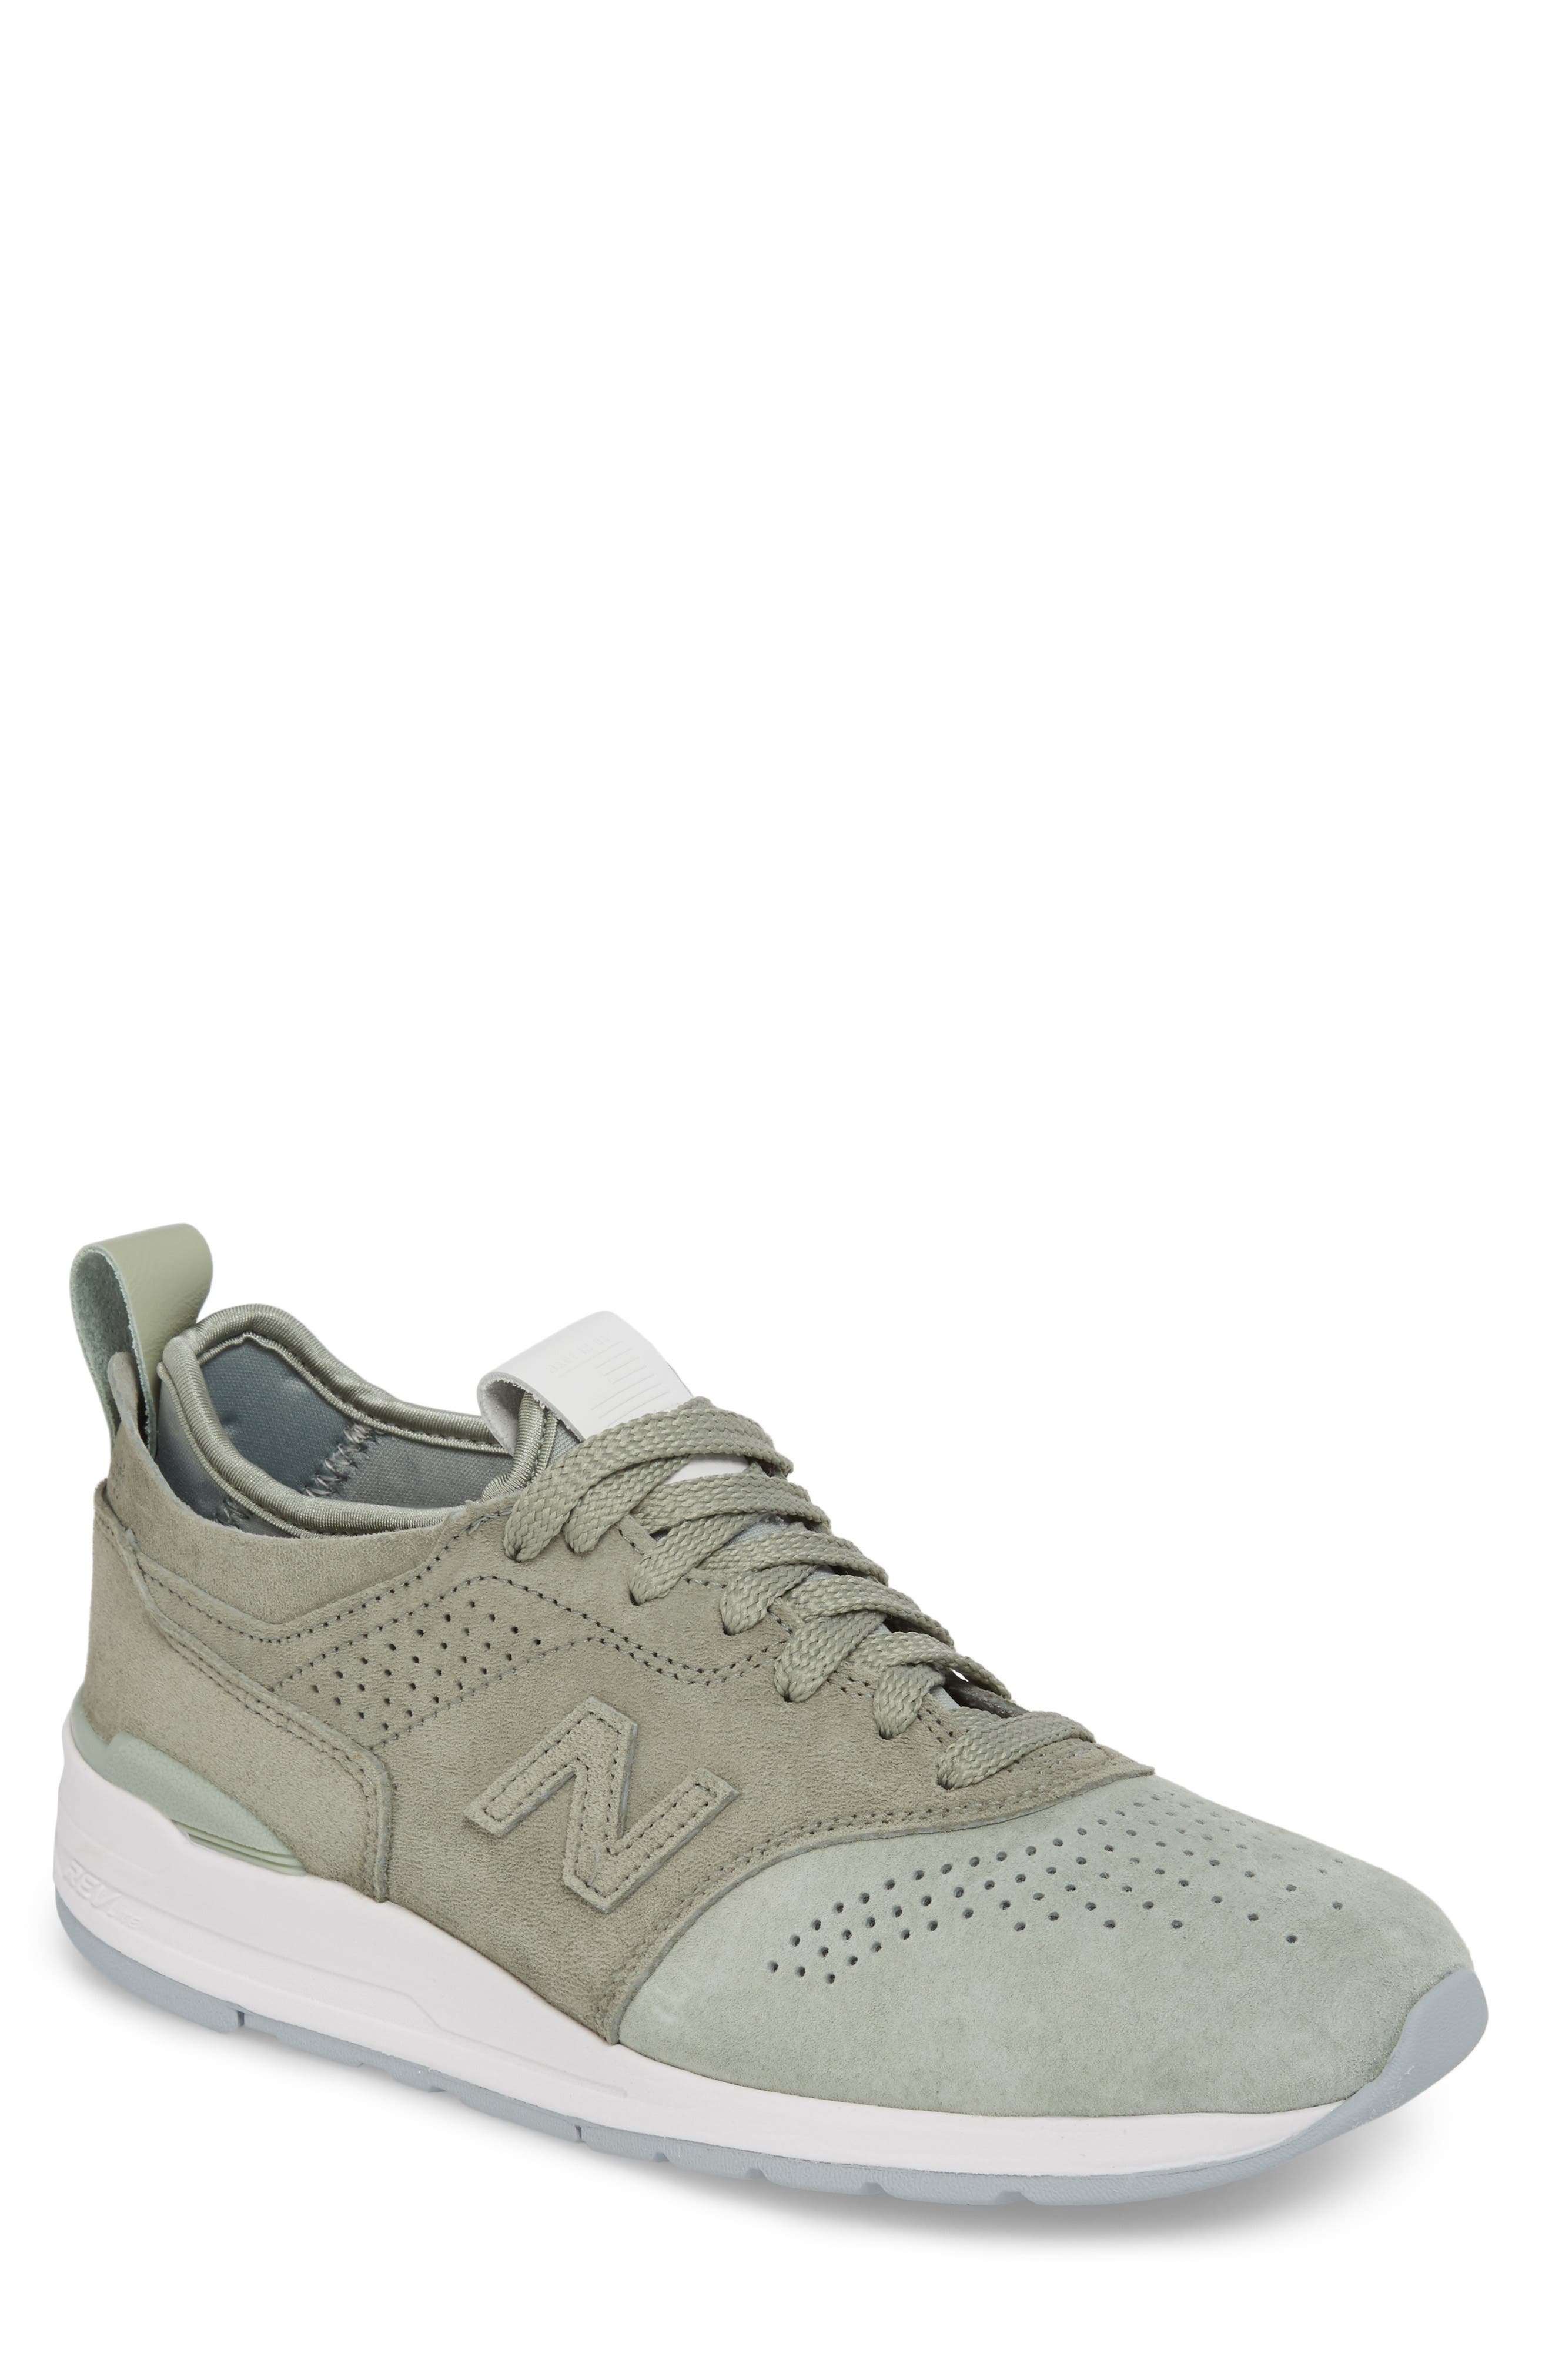 997R Perforated Sneaker,                         Main,                         color, Silver Mint